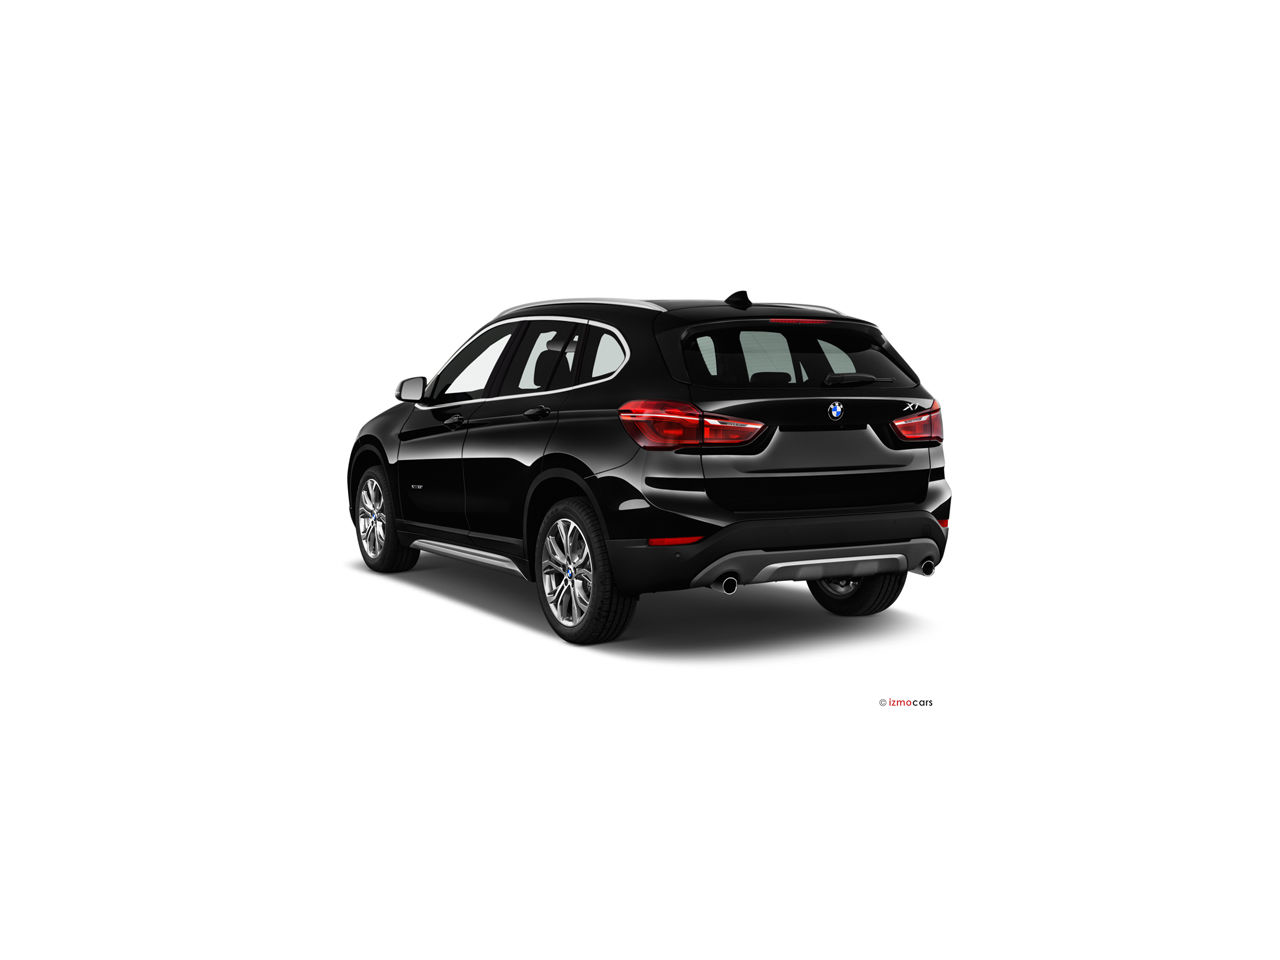 BMW X1 private lease X1 sDrive